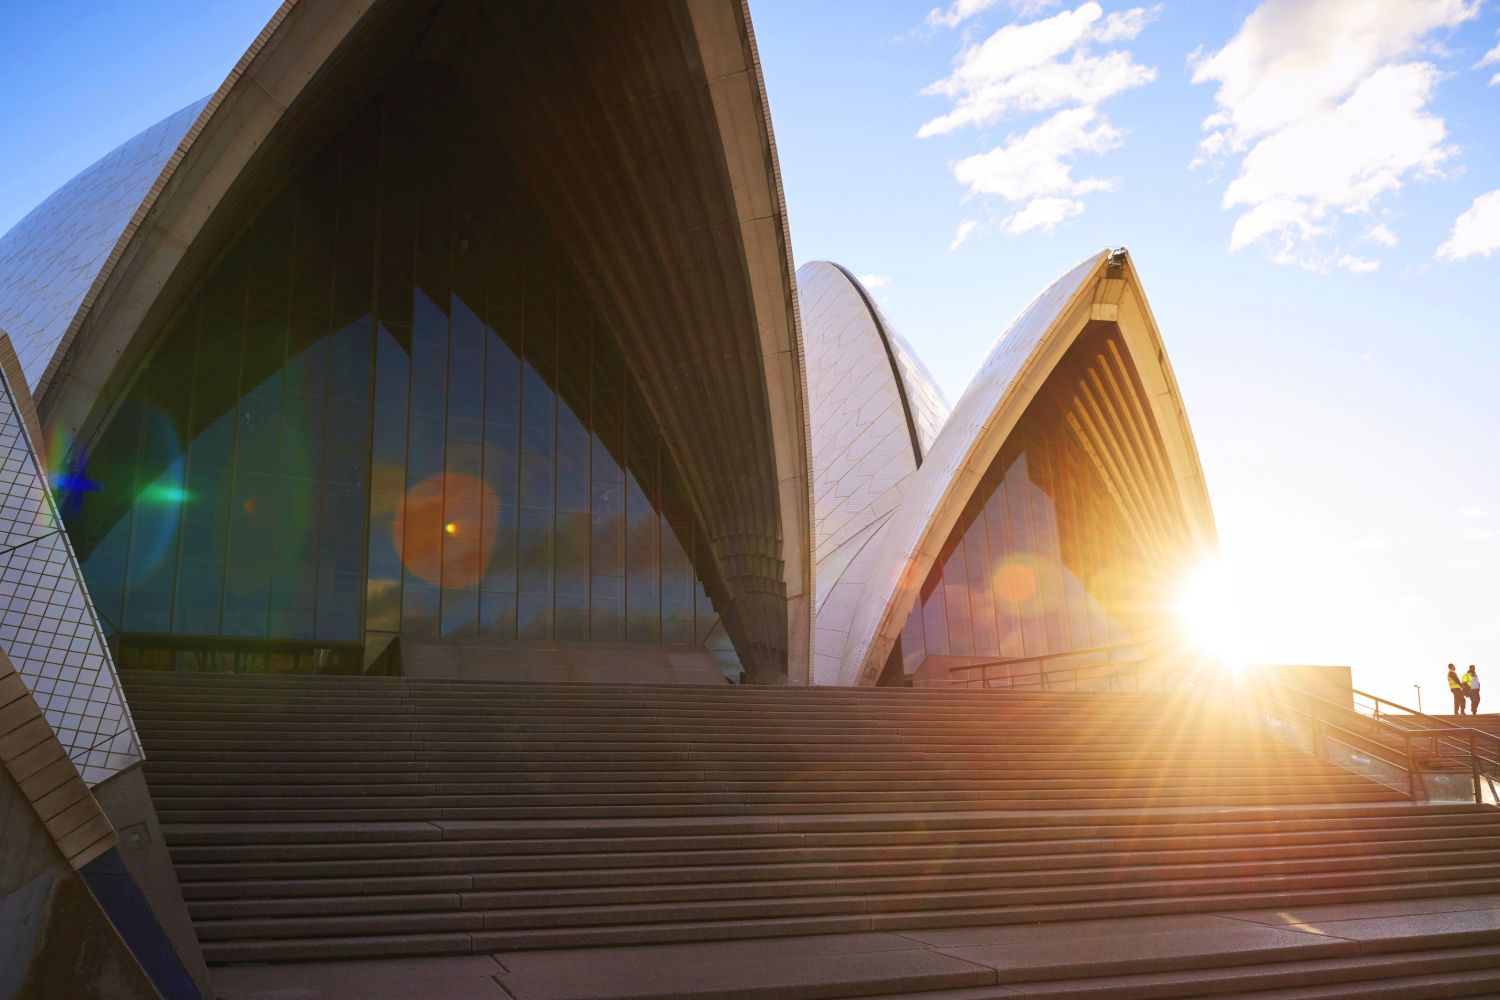 Sydney City Centre Events - The Latest Events in Sydney's